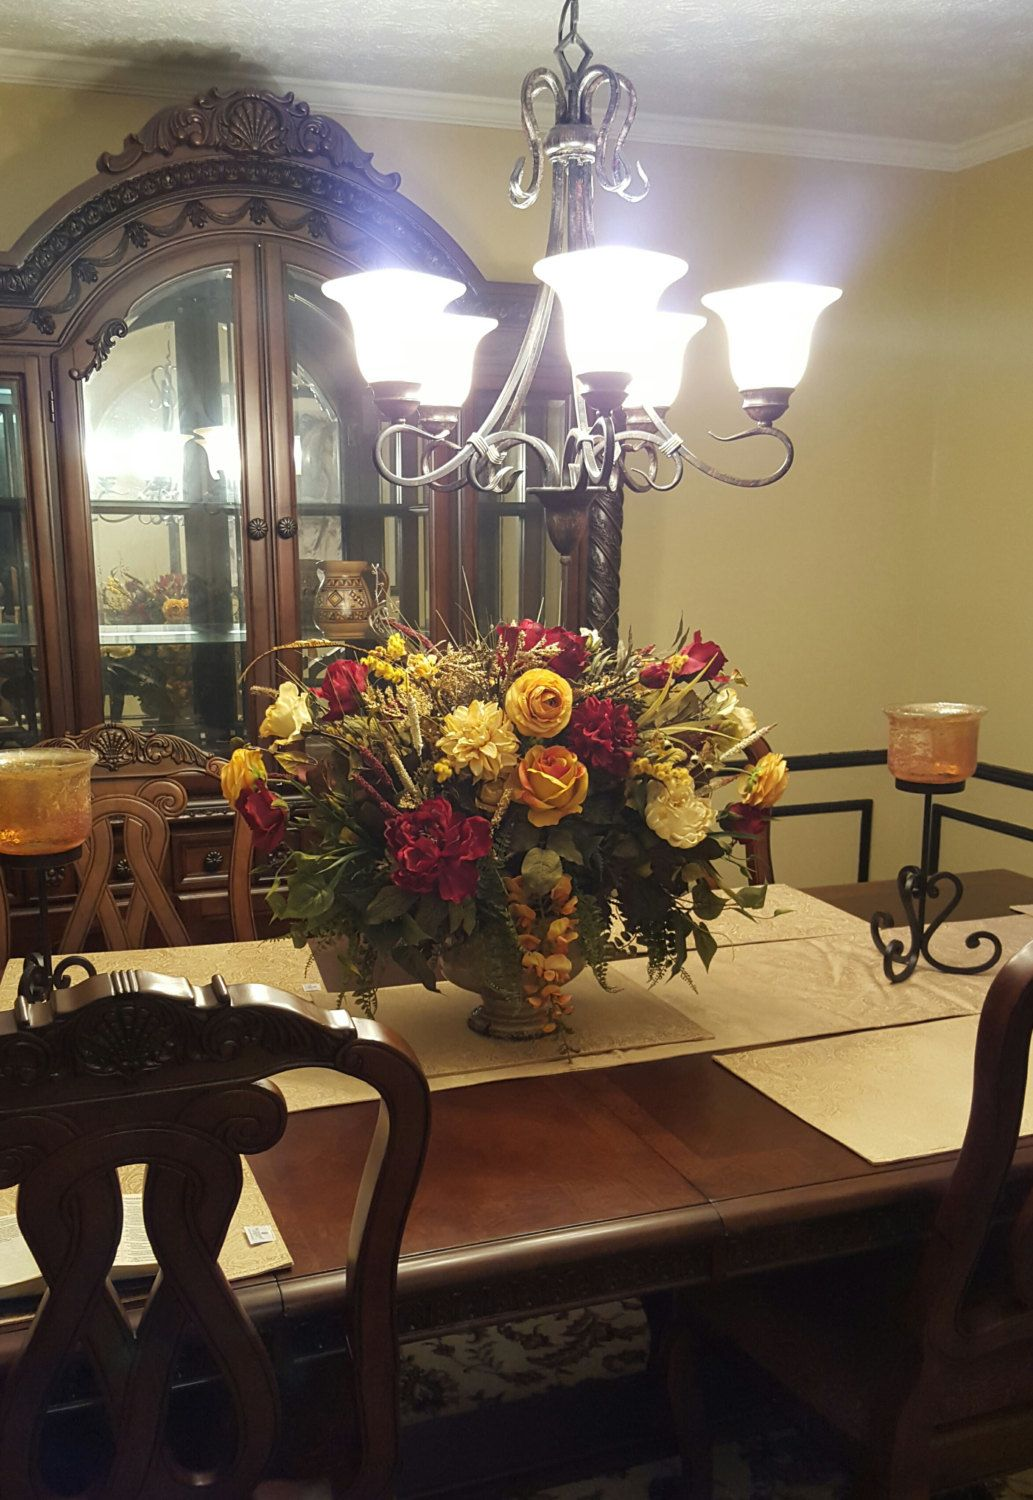 Floral Arrangement Floral Centerpiece Shipping Included Elegant Designer Tuscan Large S Table Floral Arrangements Foyer Decorating Dining Room Centerpiece